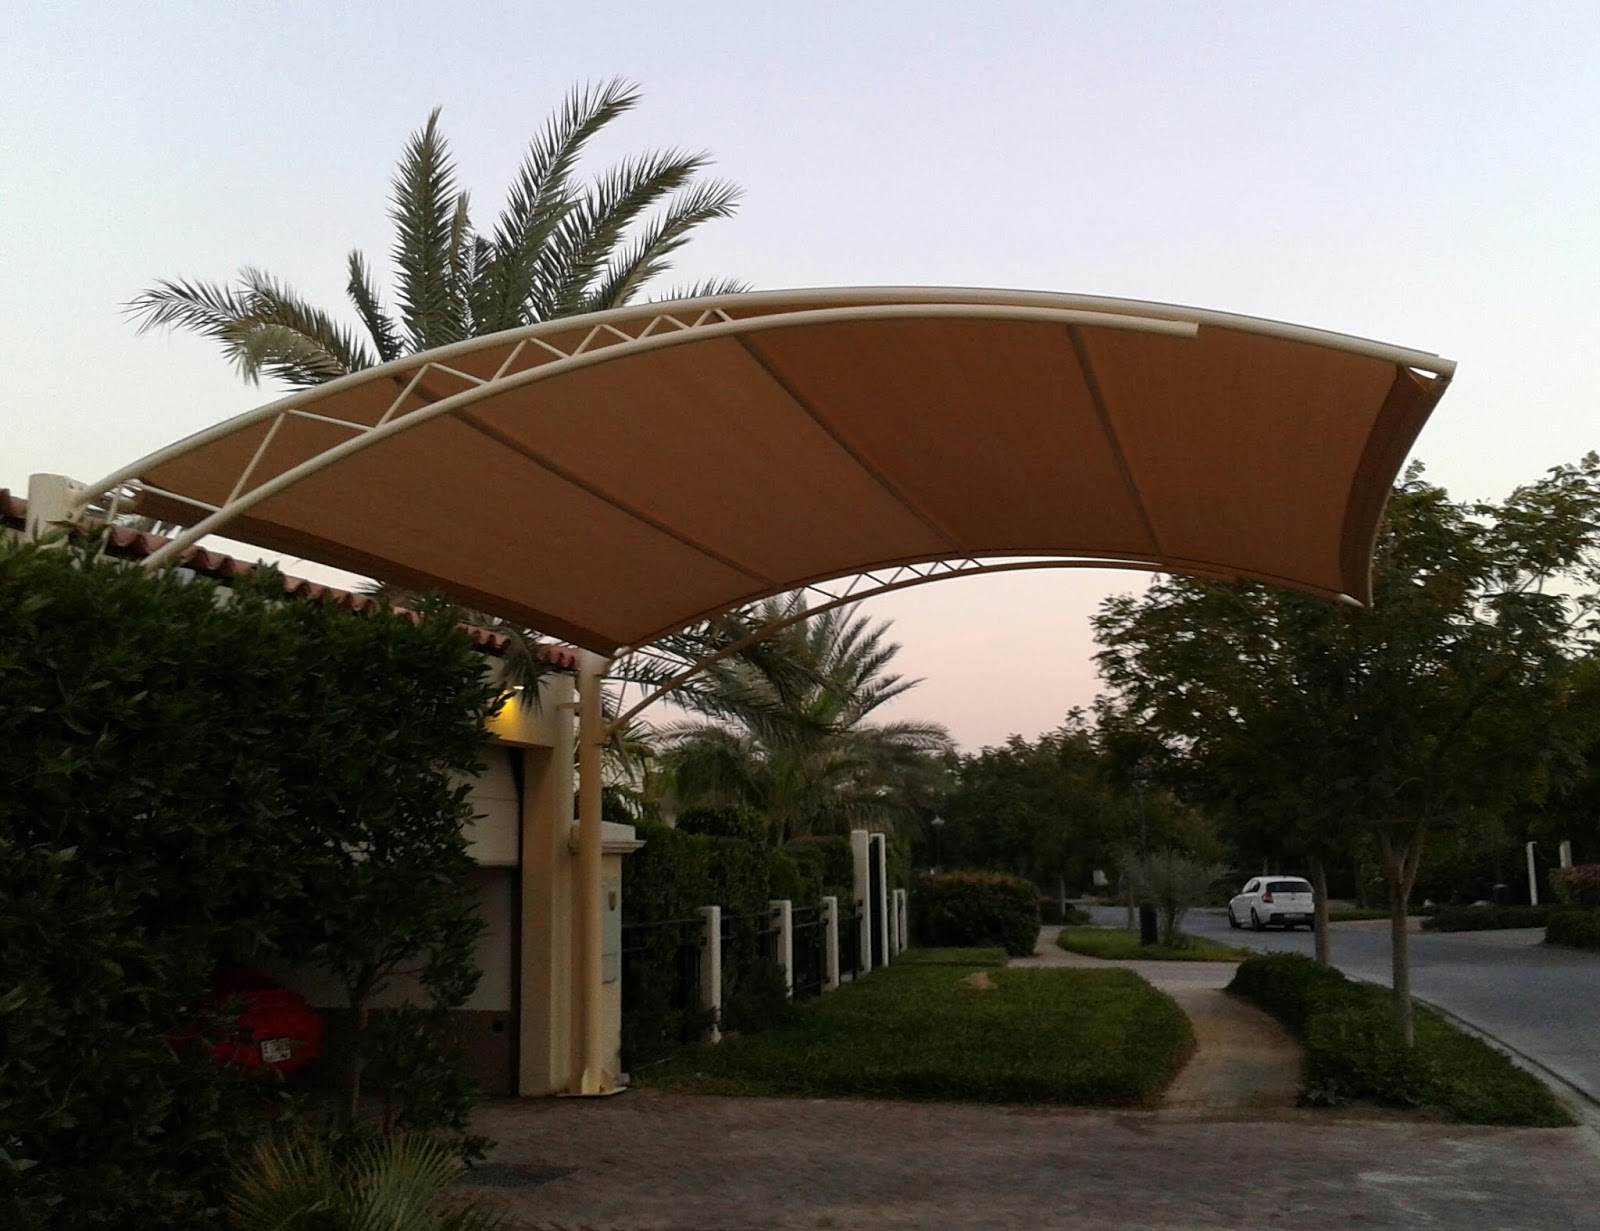 Car Park Shades Sail Car Parking Shades Sail Dubai Shades Fabric Dubai HDPE Car Park Shades Dubai UAE & Car Parking Shades Suppliers in UAE: Car Park Shades Sail Car ...